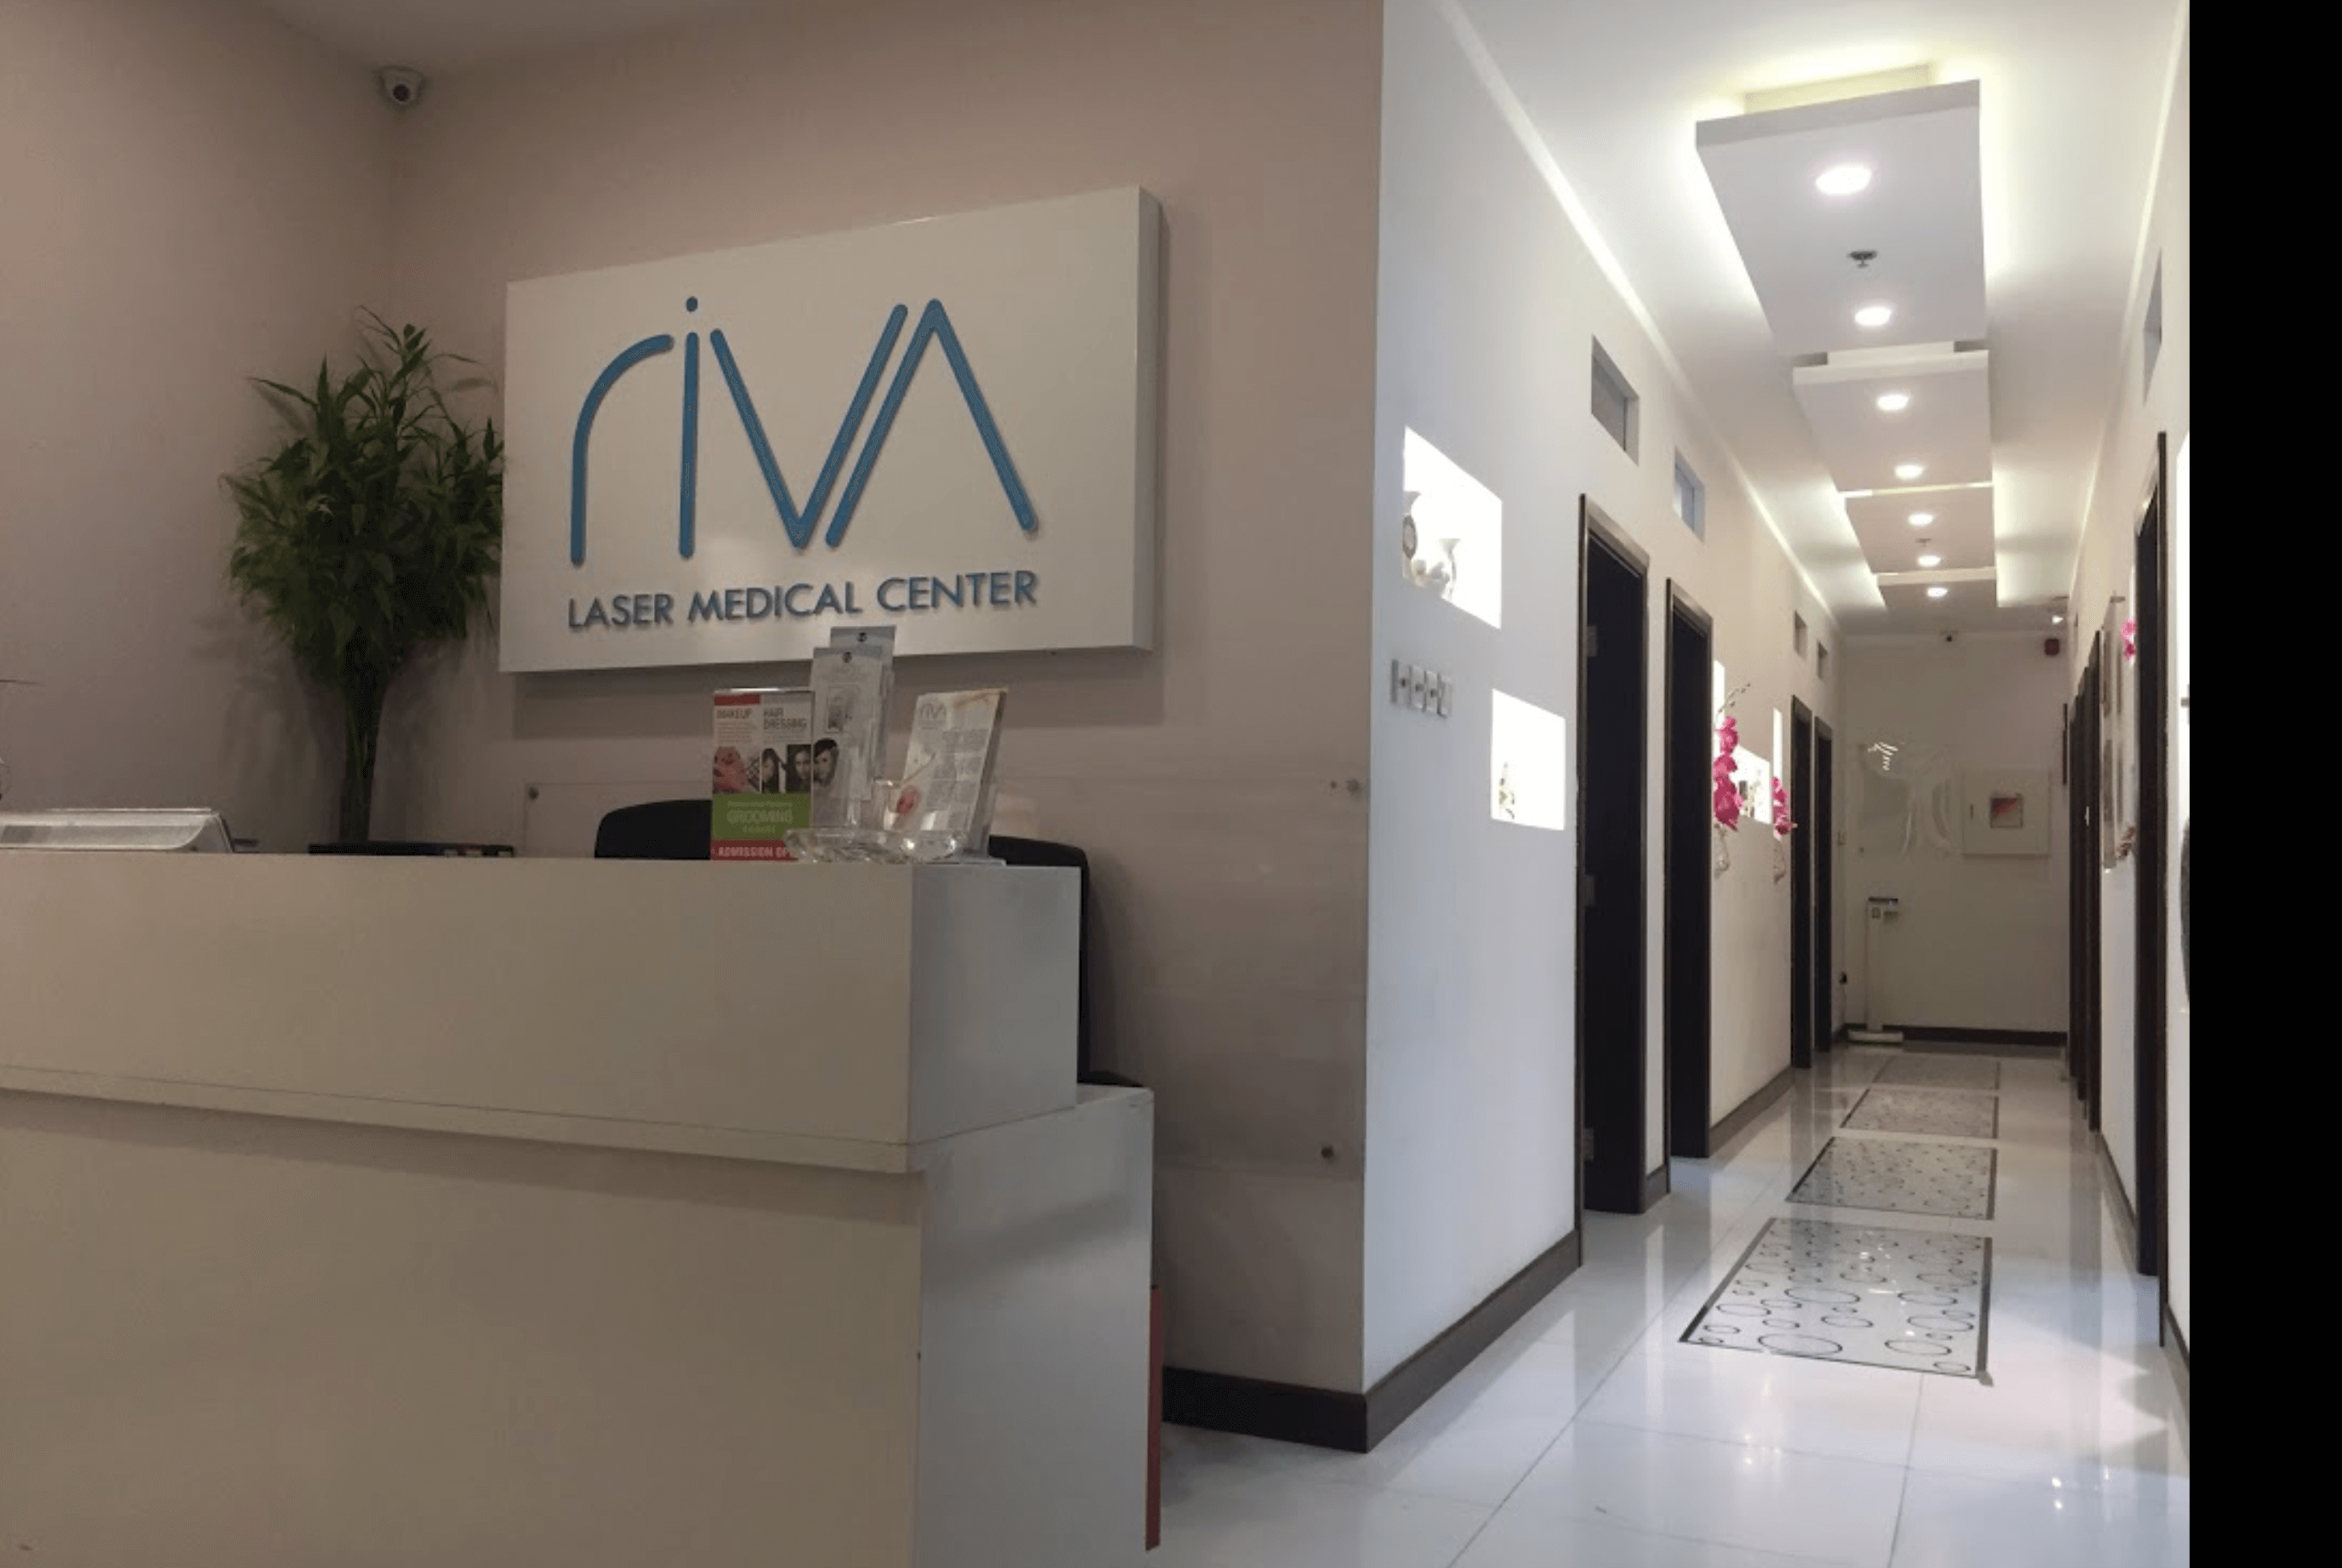 Riva Laser Medical Center 2